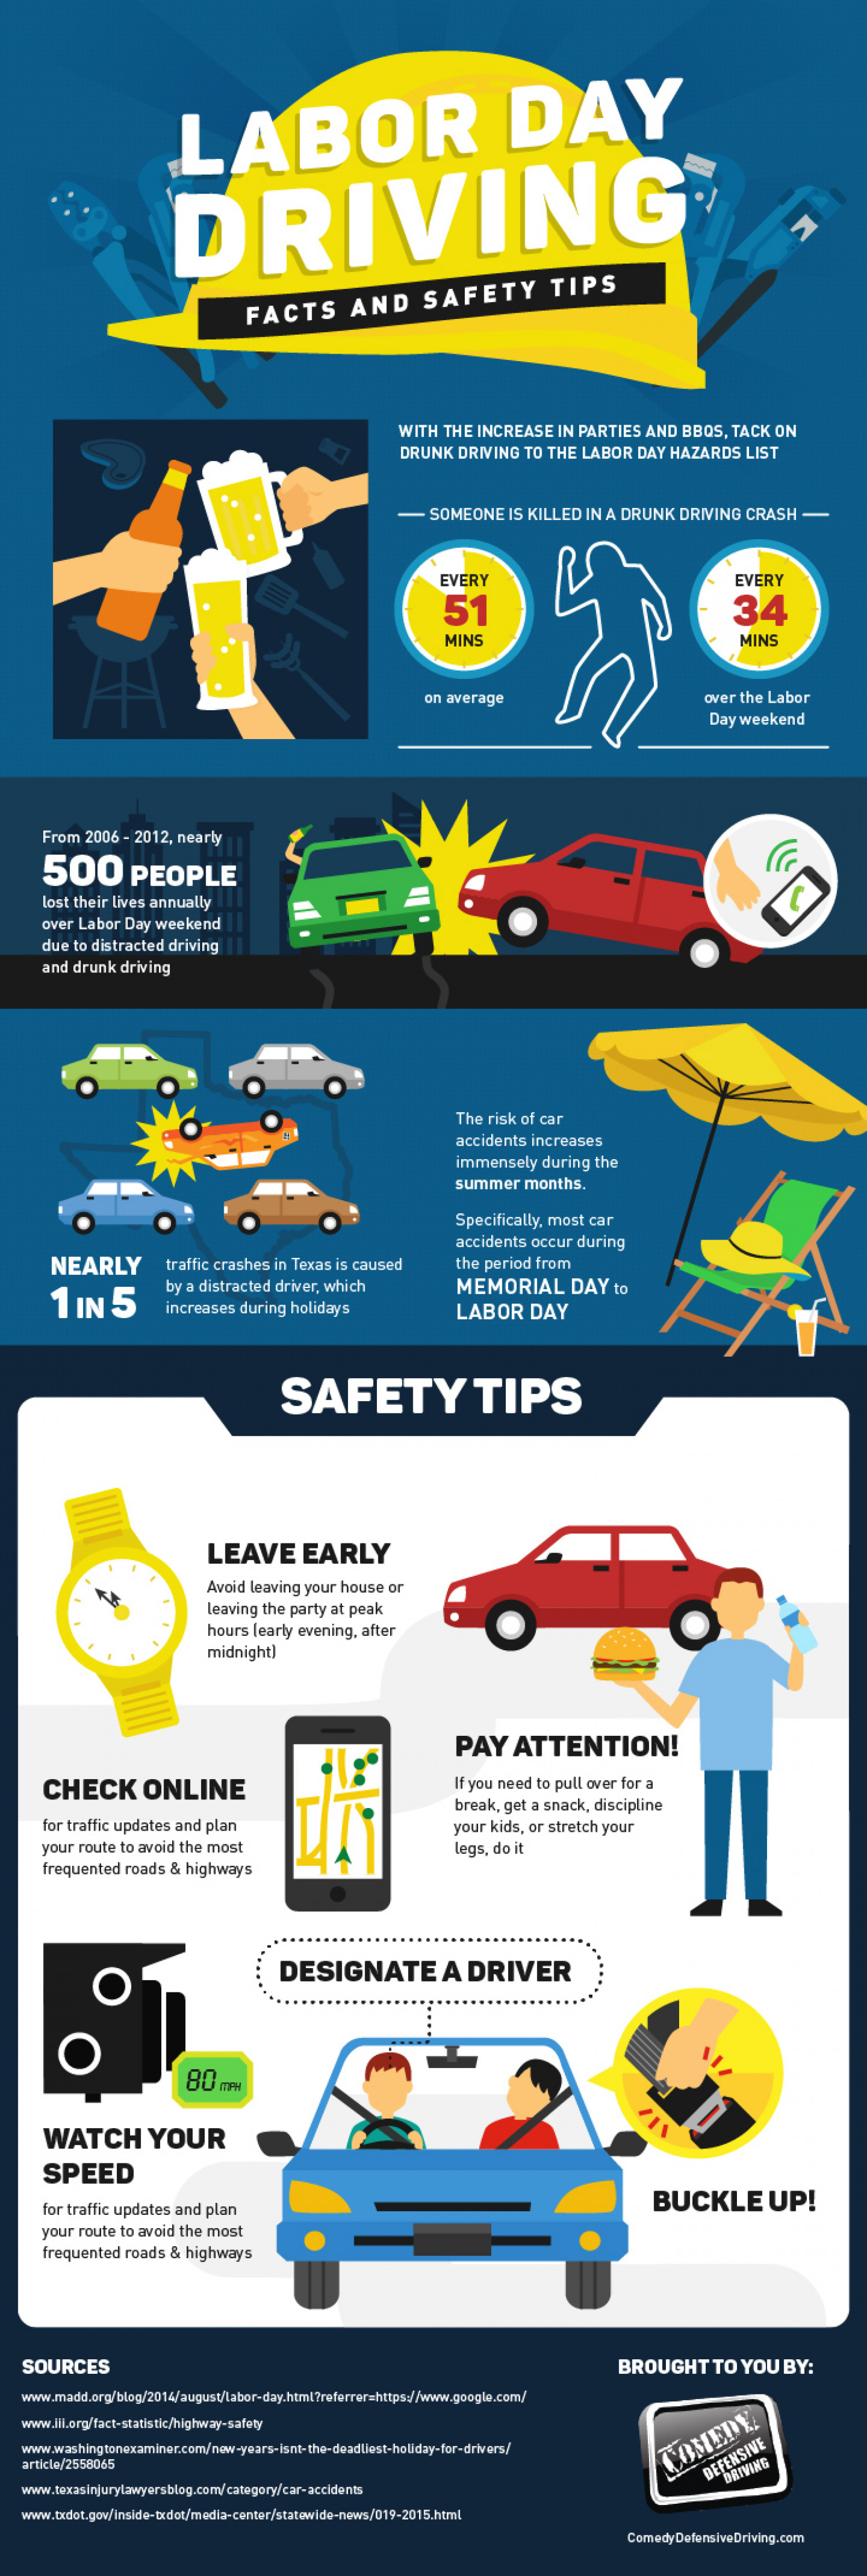 Labor Safety Labor Day Driving Facts And Safety Tips Visual Ly